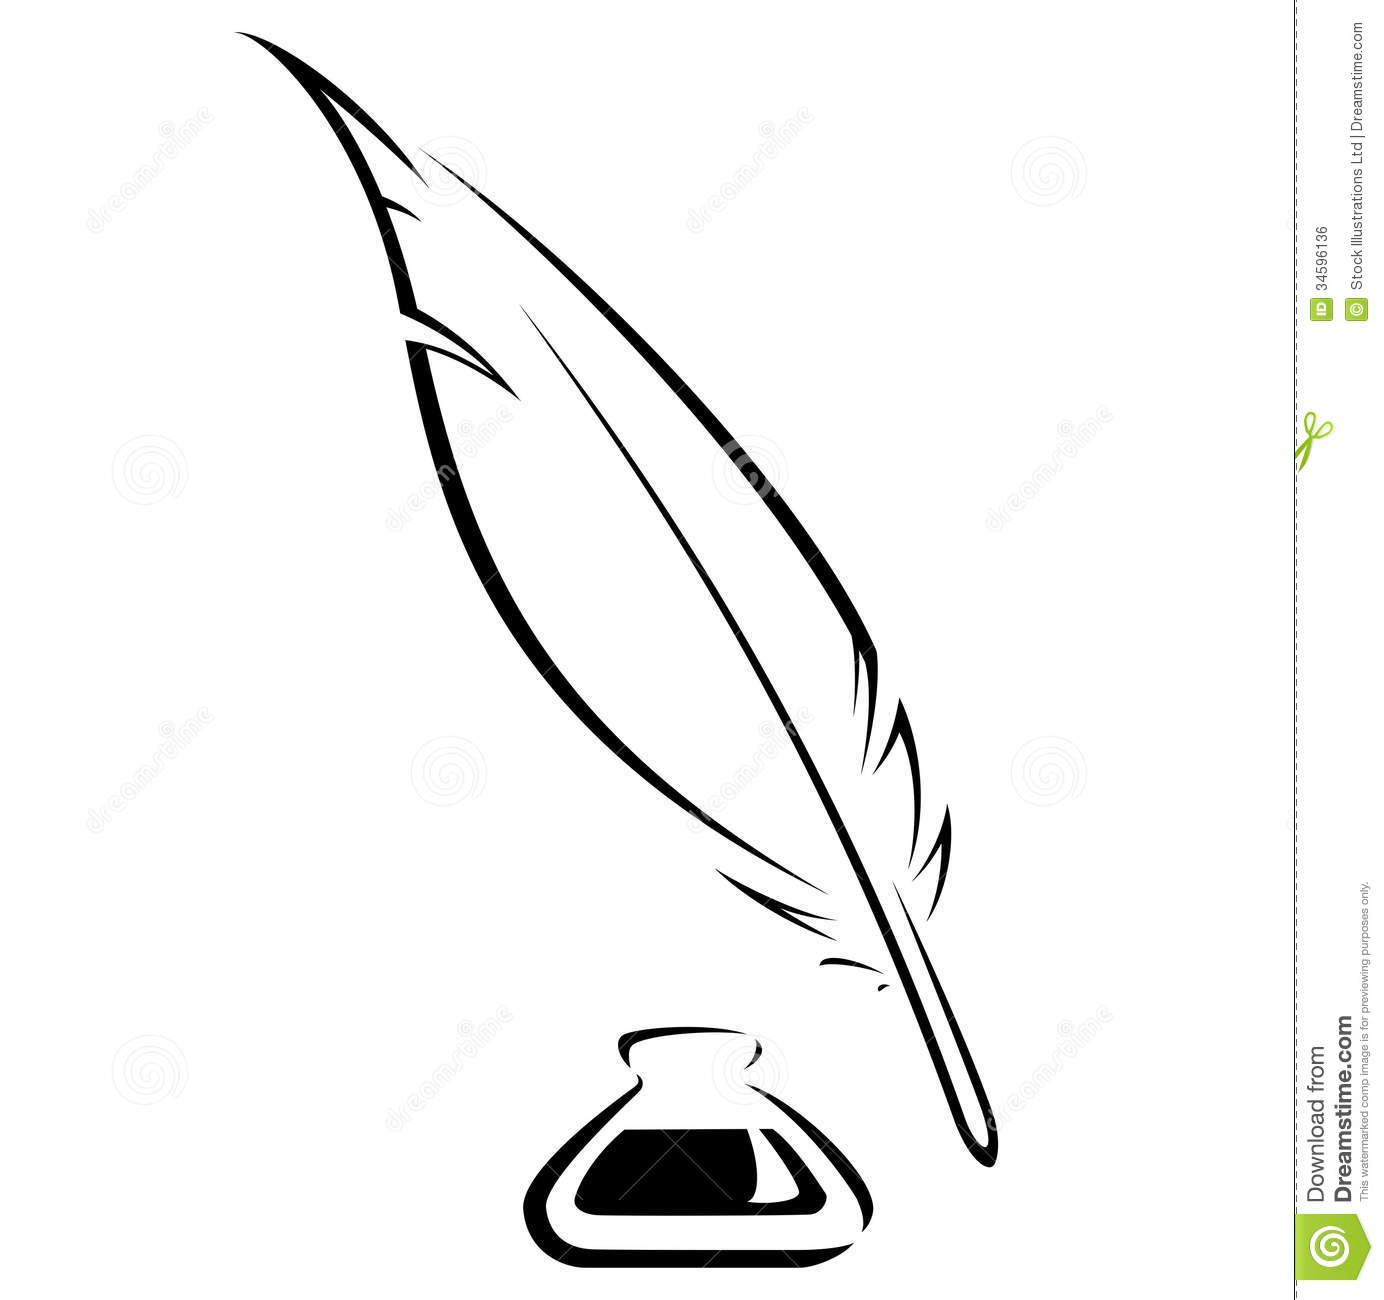 Line Drawing Of Quill : Quill and ink clipart suggest